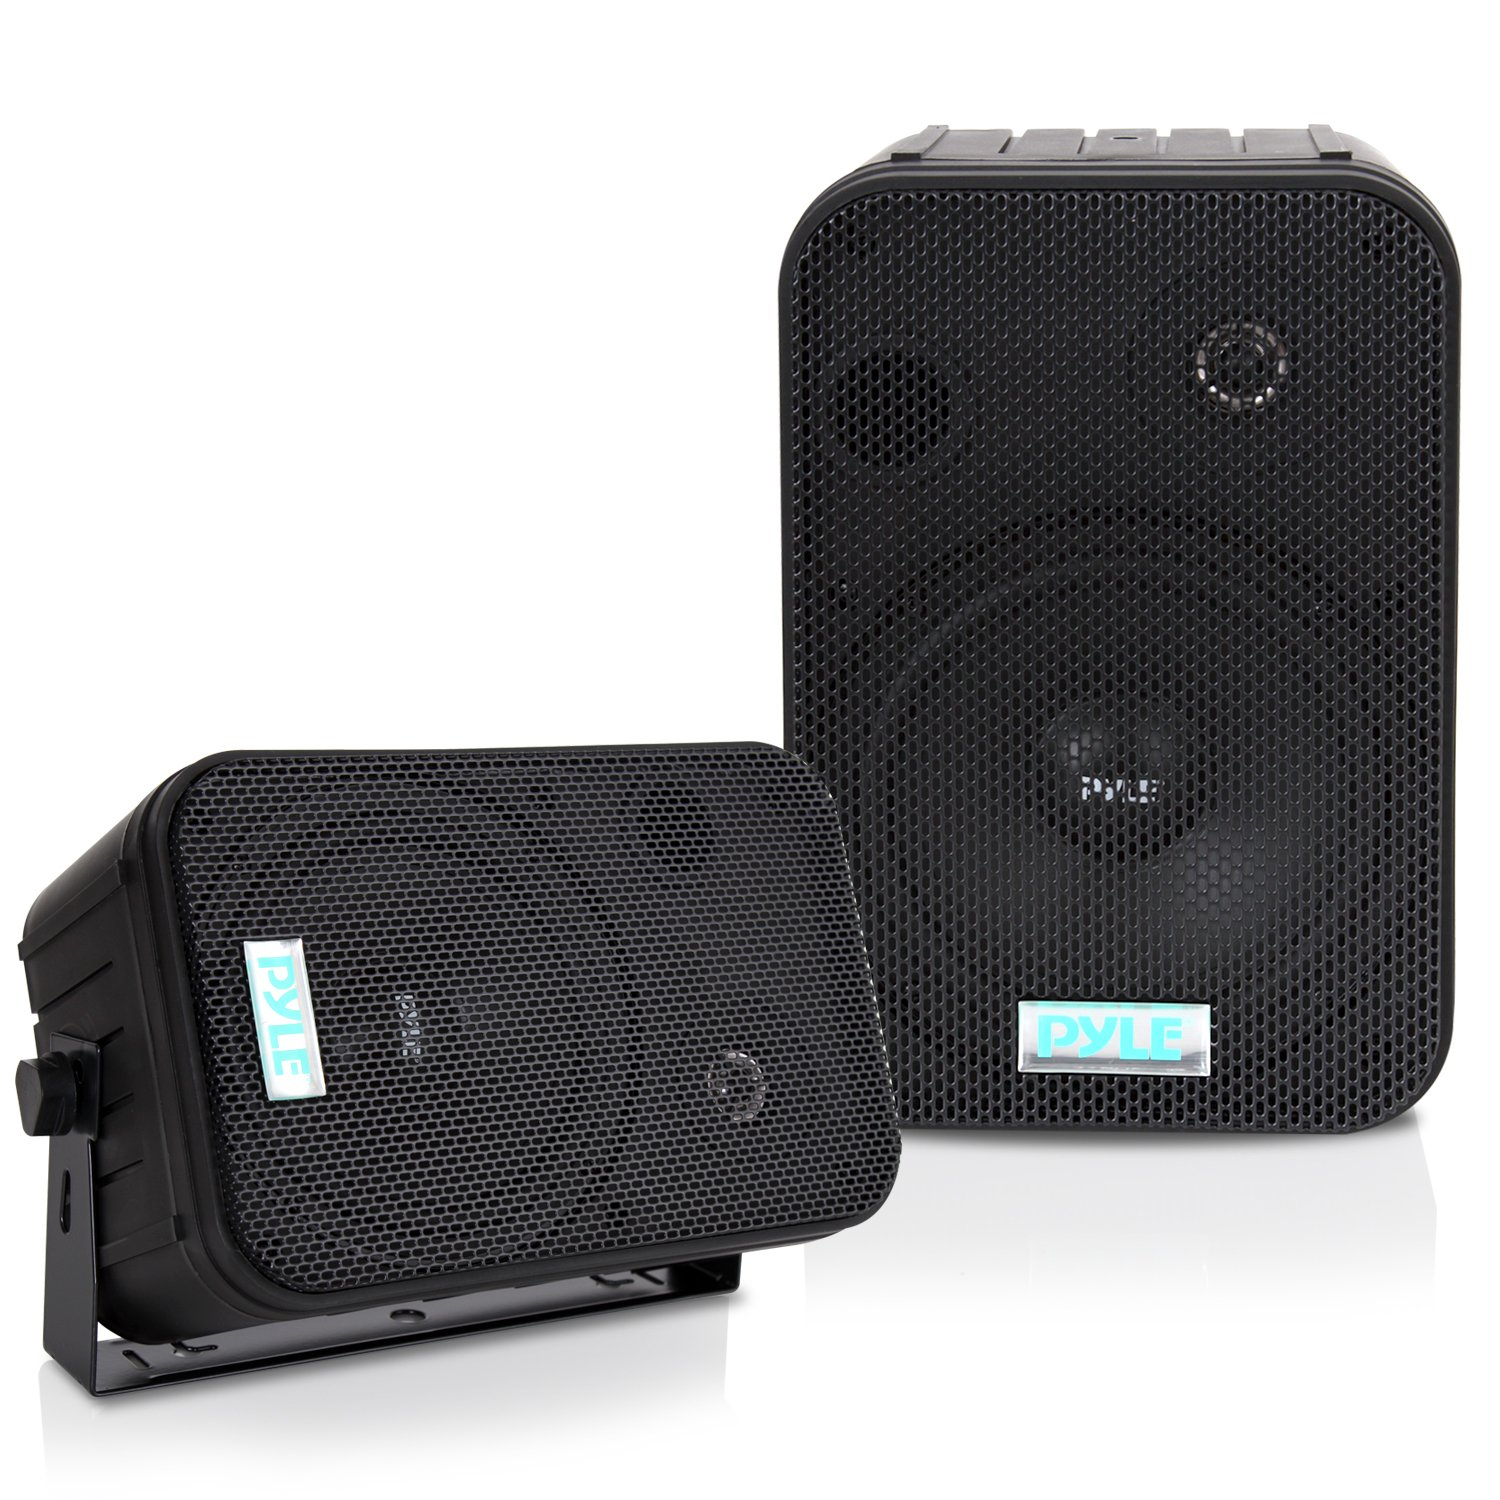 Pyle-Home Pdwr50b 6.5-Inch Indoor, Outdoor Waterproof Speakers (Black) (Discontinued by Manufacturer) Sound Around